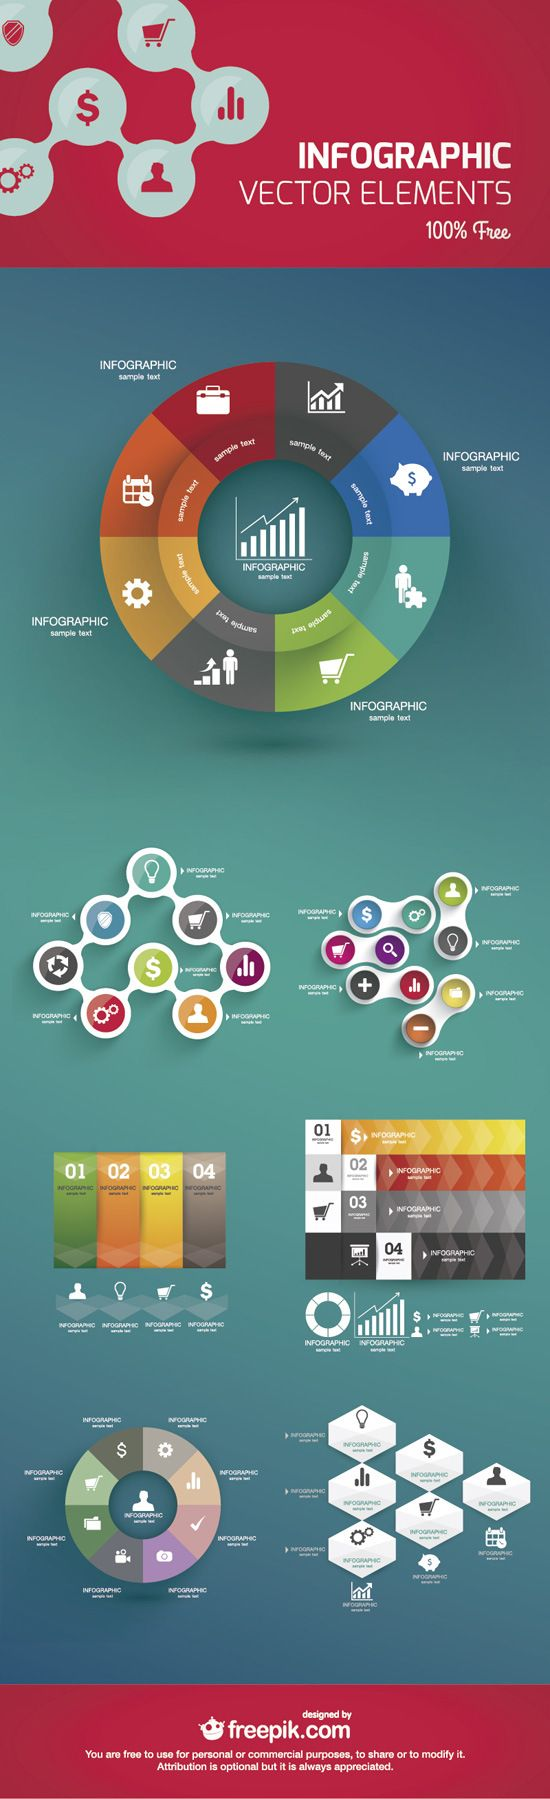 Free Vector Infographic Design Template